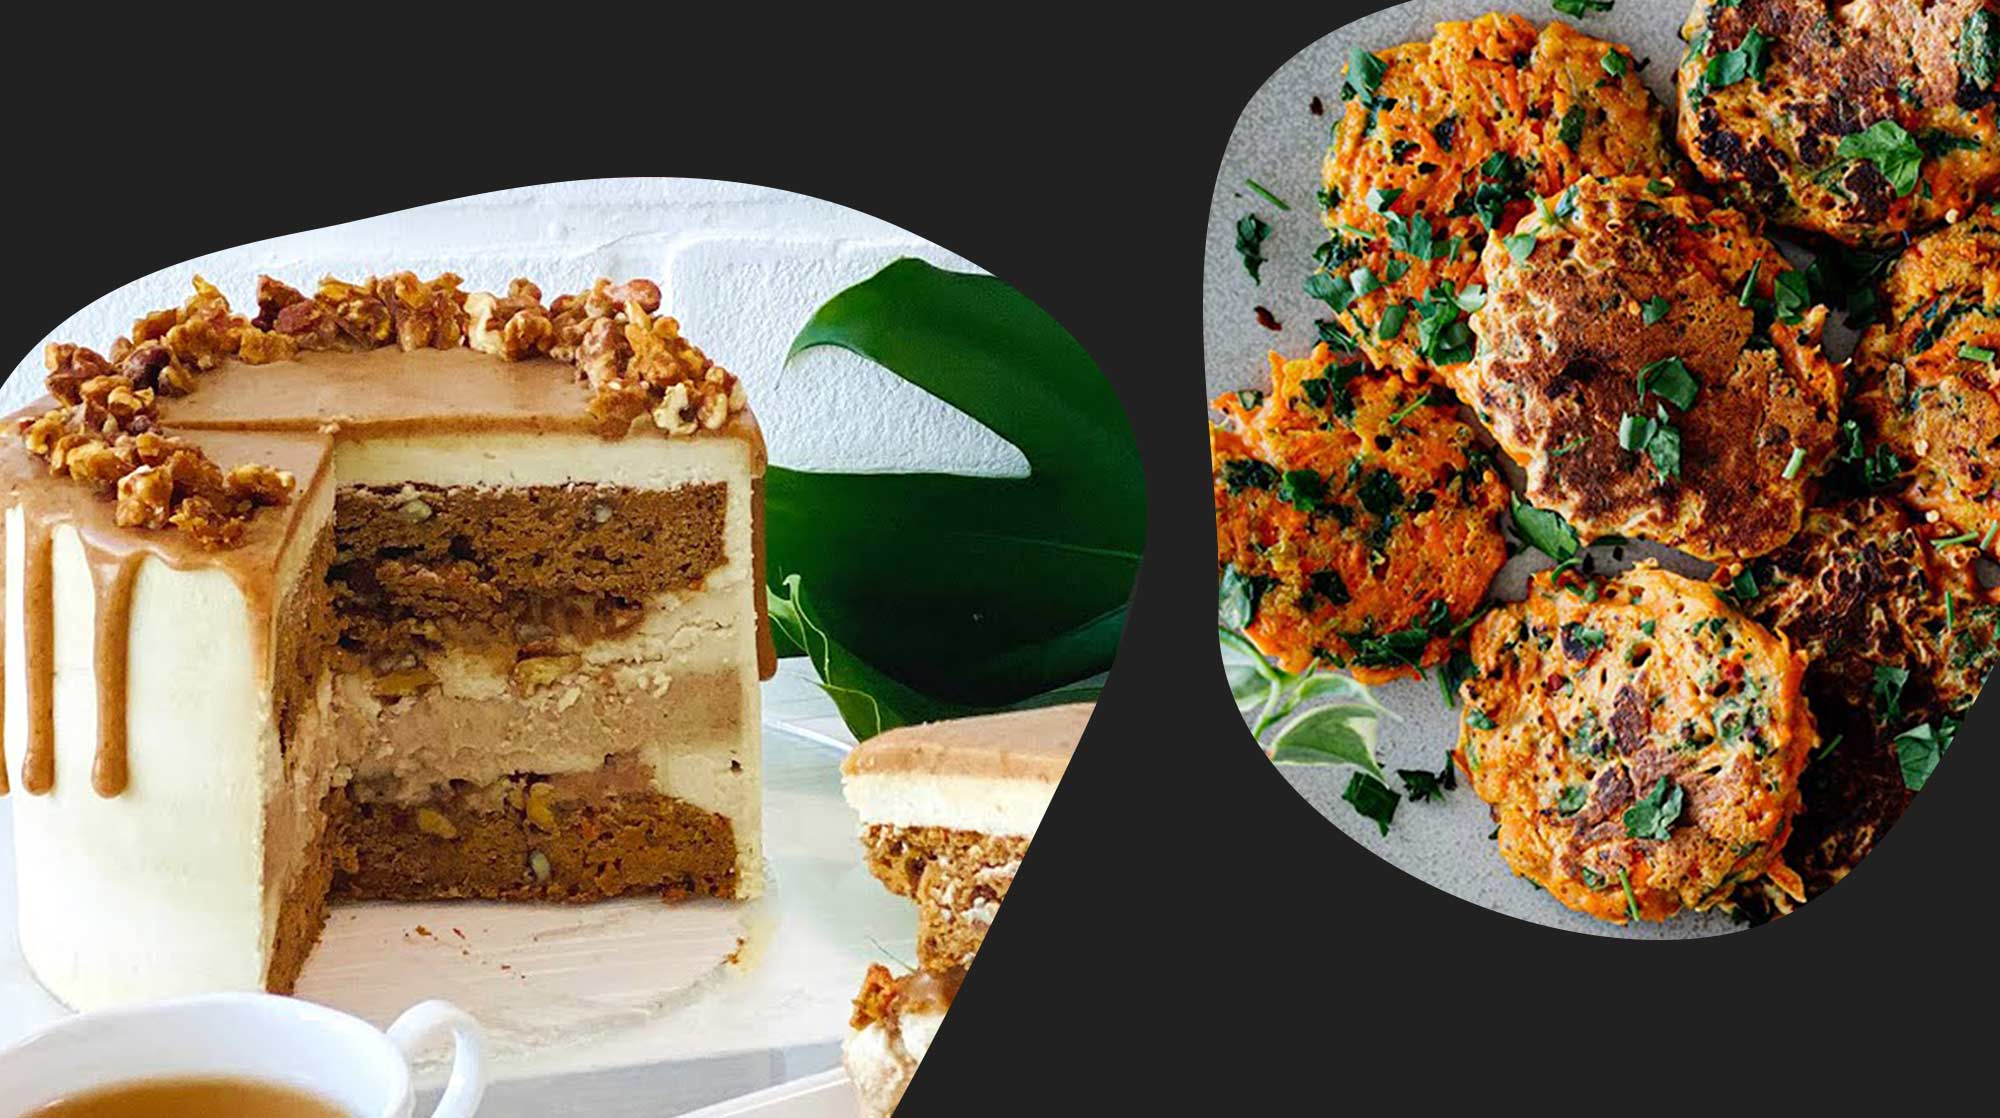 Watch 22 vegan carrot recipes from YouTube (Image: Collage of YouTube stills)